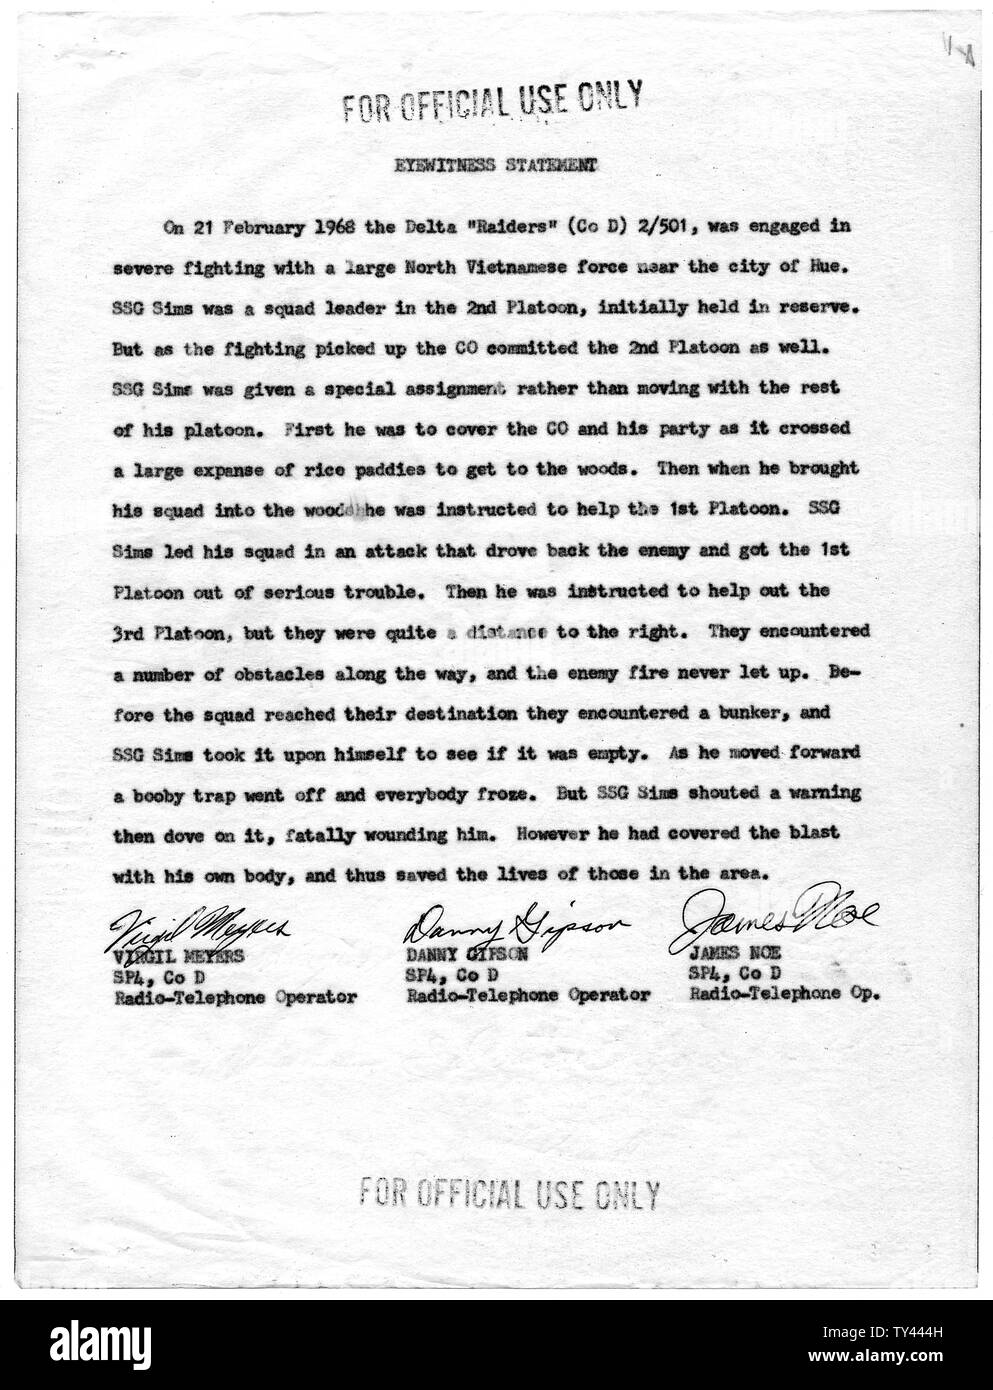 Eyewitness Statement of Virgil Meyers, Danny Gipson, and James Noe, Company D, Second Battalion (Airborne), 501st Infantry, 101st Airborne Division Regarding SSG Clifford C. Sims; Scope and content:  This eyewitness statement contains evidence of the actions of SSG Clifford C. Sims, who distinguished himself on February 21, 1968, in the battle of Hue, Republic of Vietnam. As a result of this and other statements, Staff Sergeant Sims was awarded posthumously the Congressional Medal of Honor. In an extraordinary occurrence, SSG Joe Hooper of the same company earned the Congressional Medal of Hon - Stock Image